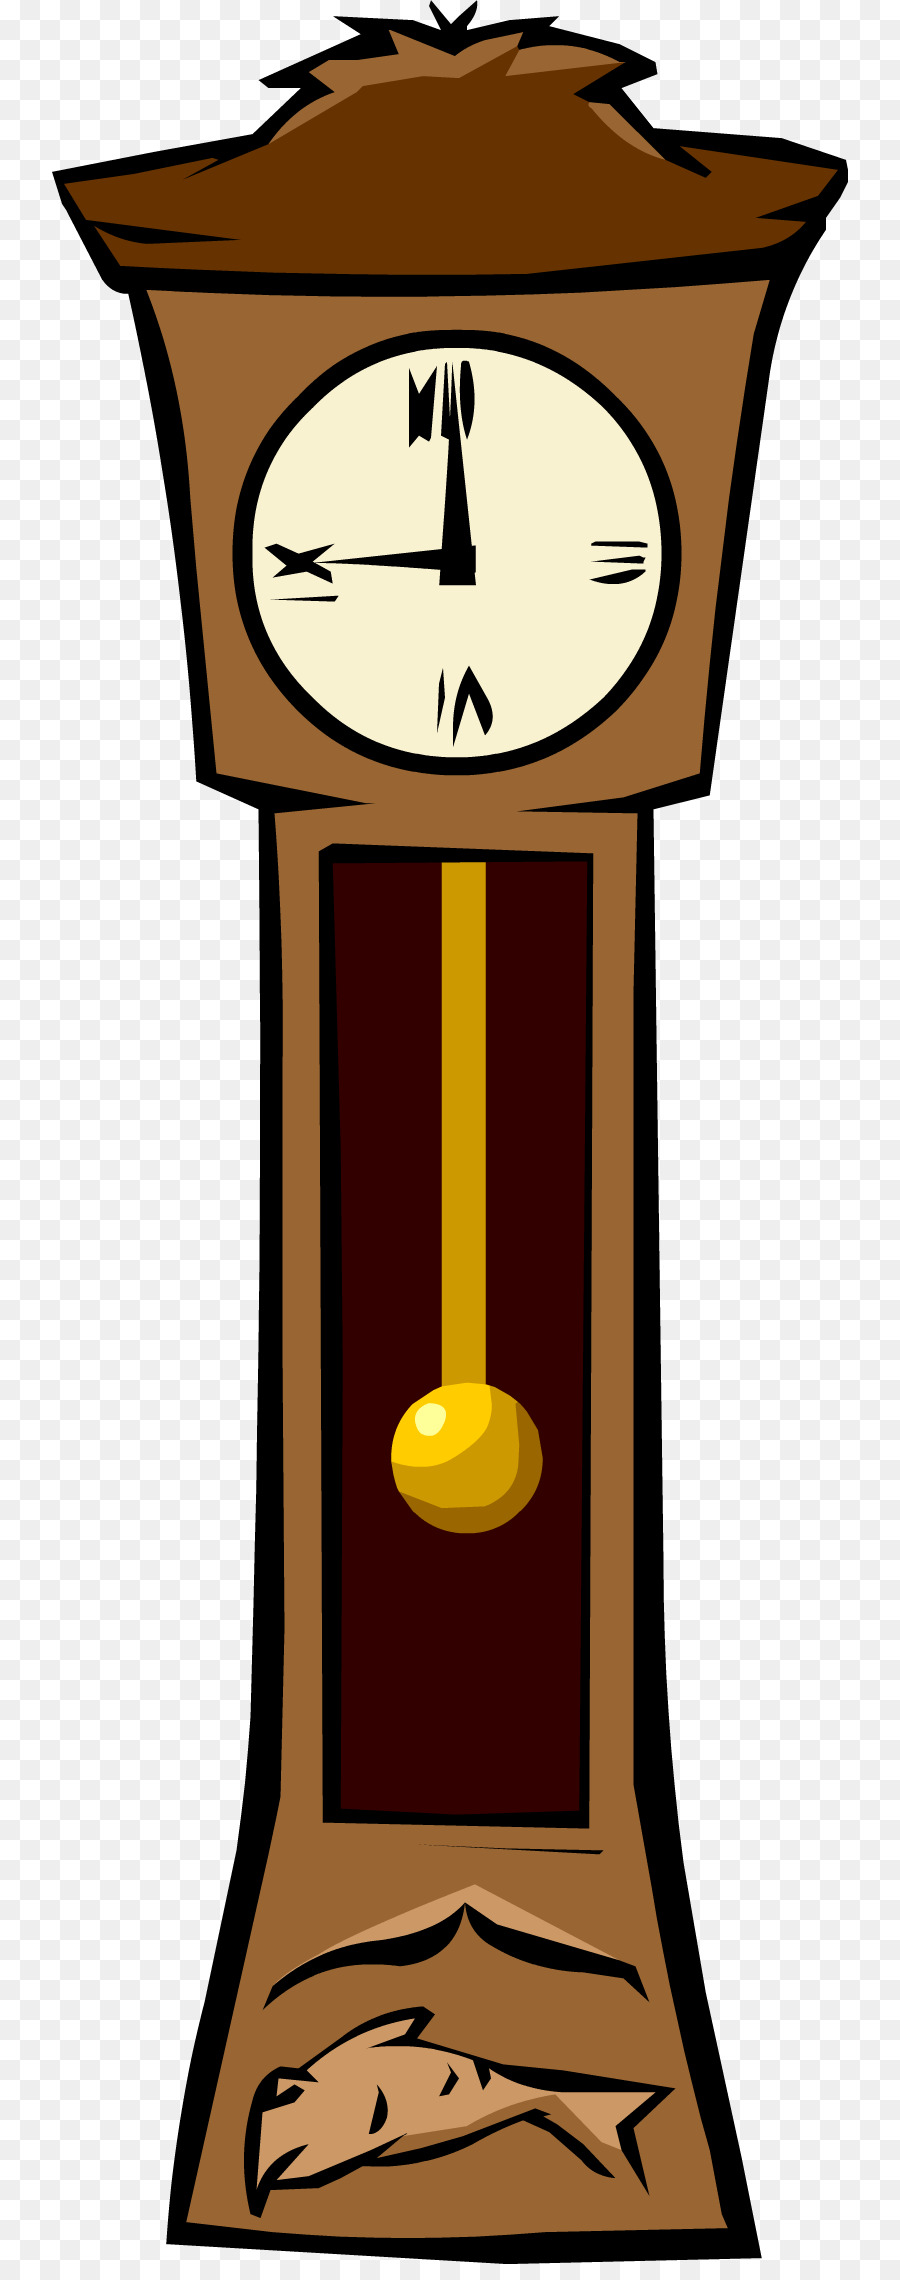 900x2280 Club Penguin Floor Amp Grandfather Clocks Clip Art